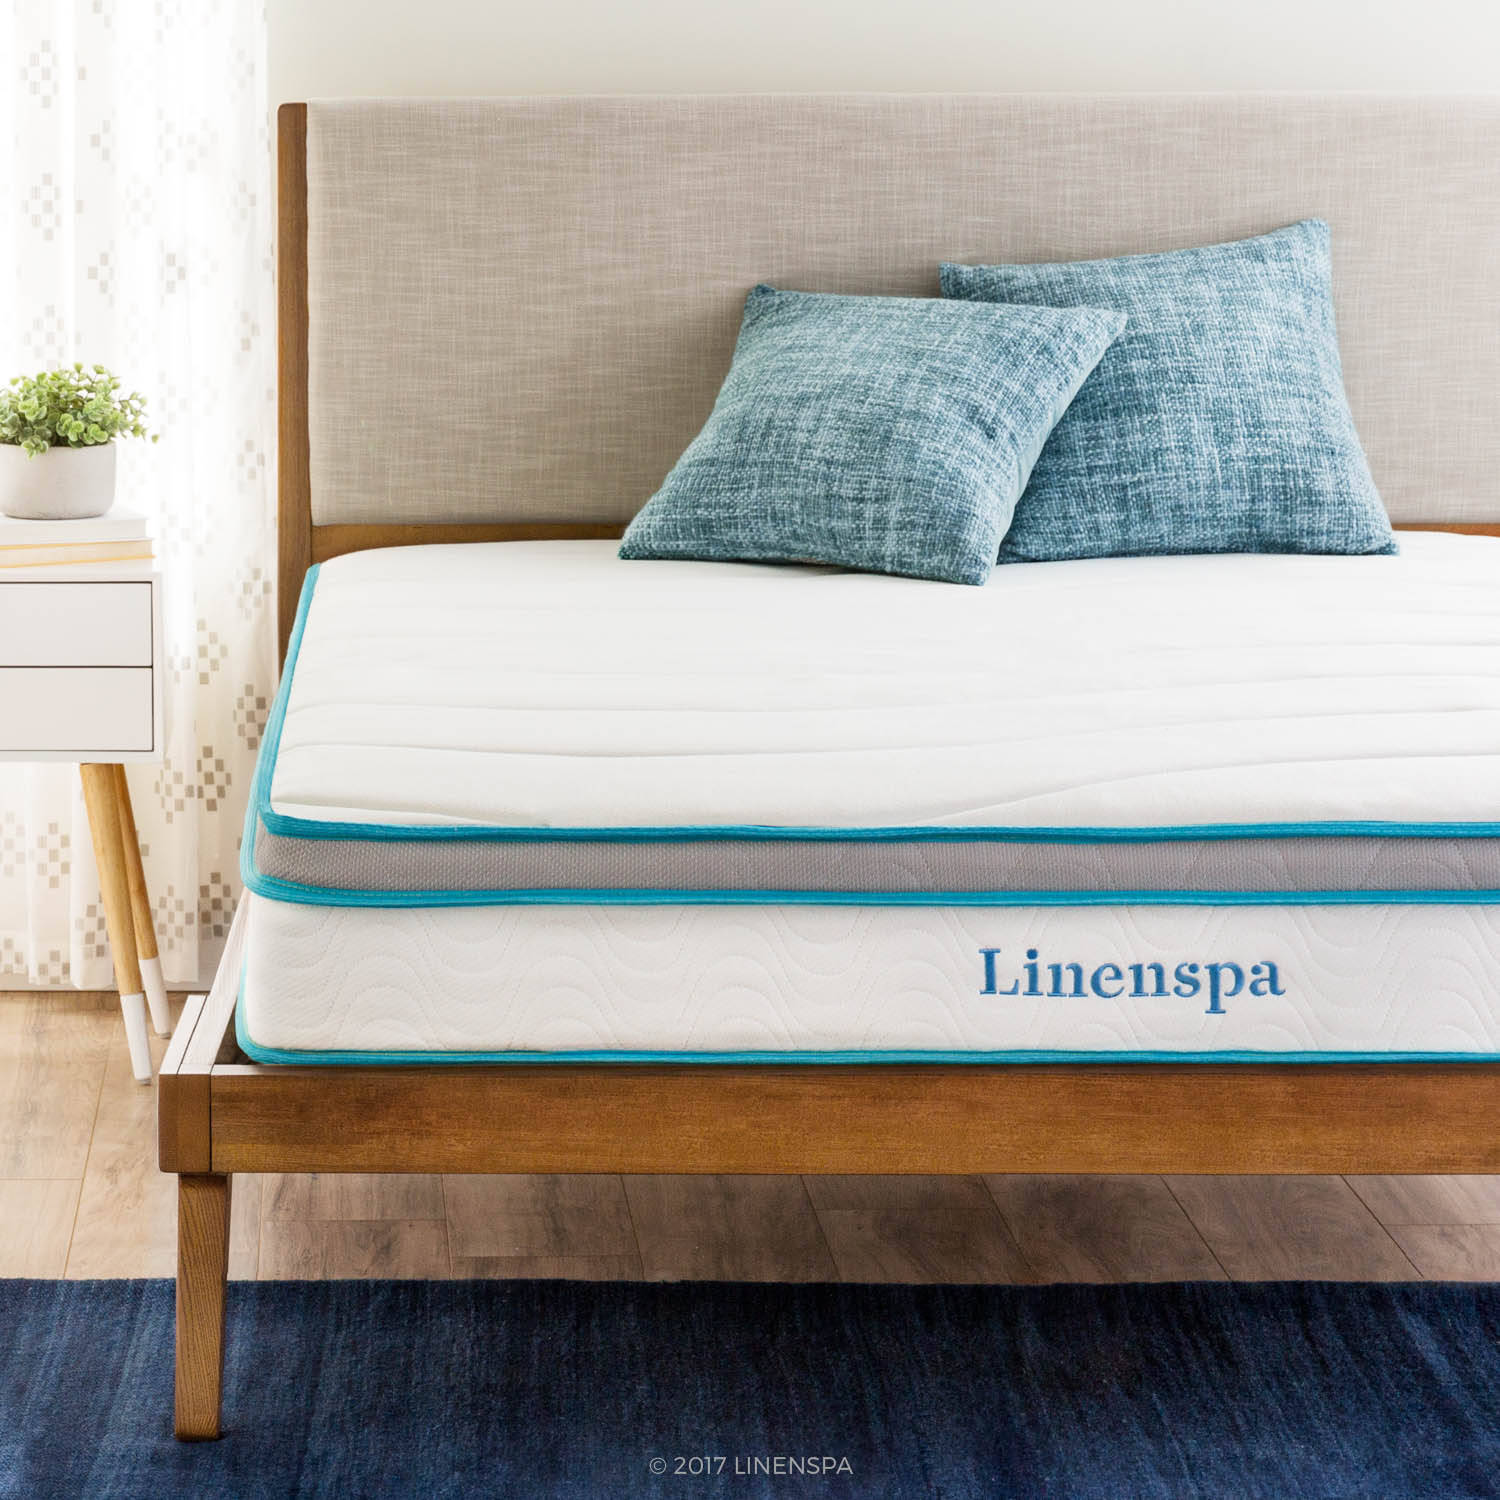 Linenspa Spring and Memory Foam Hybrid Mattress